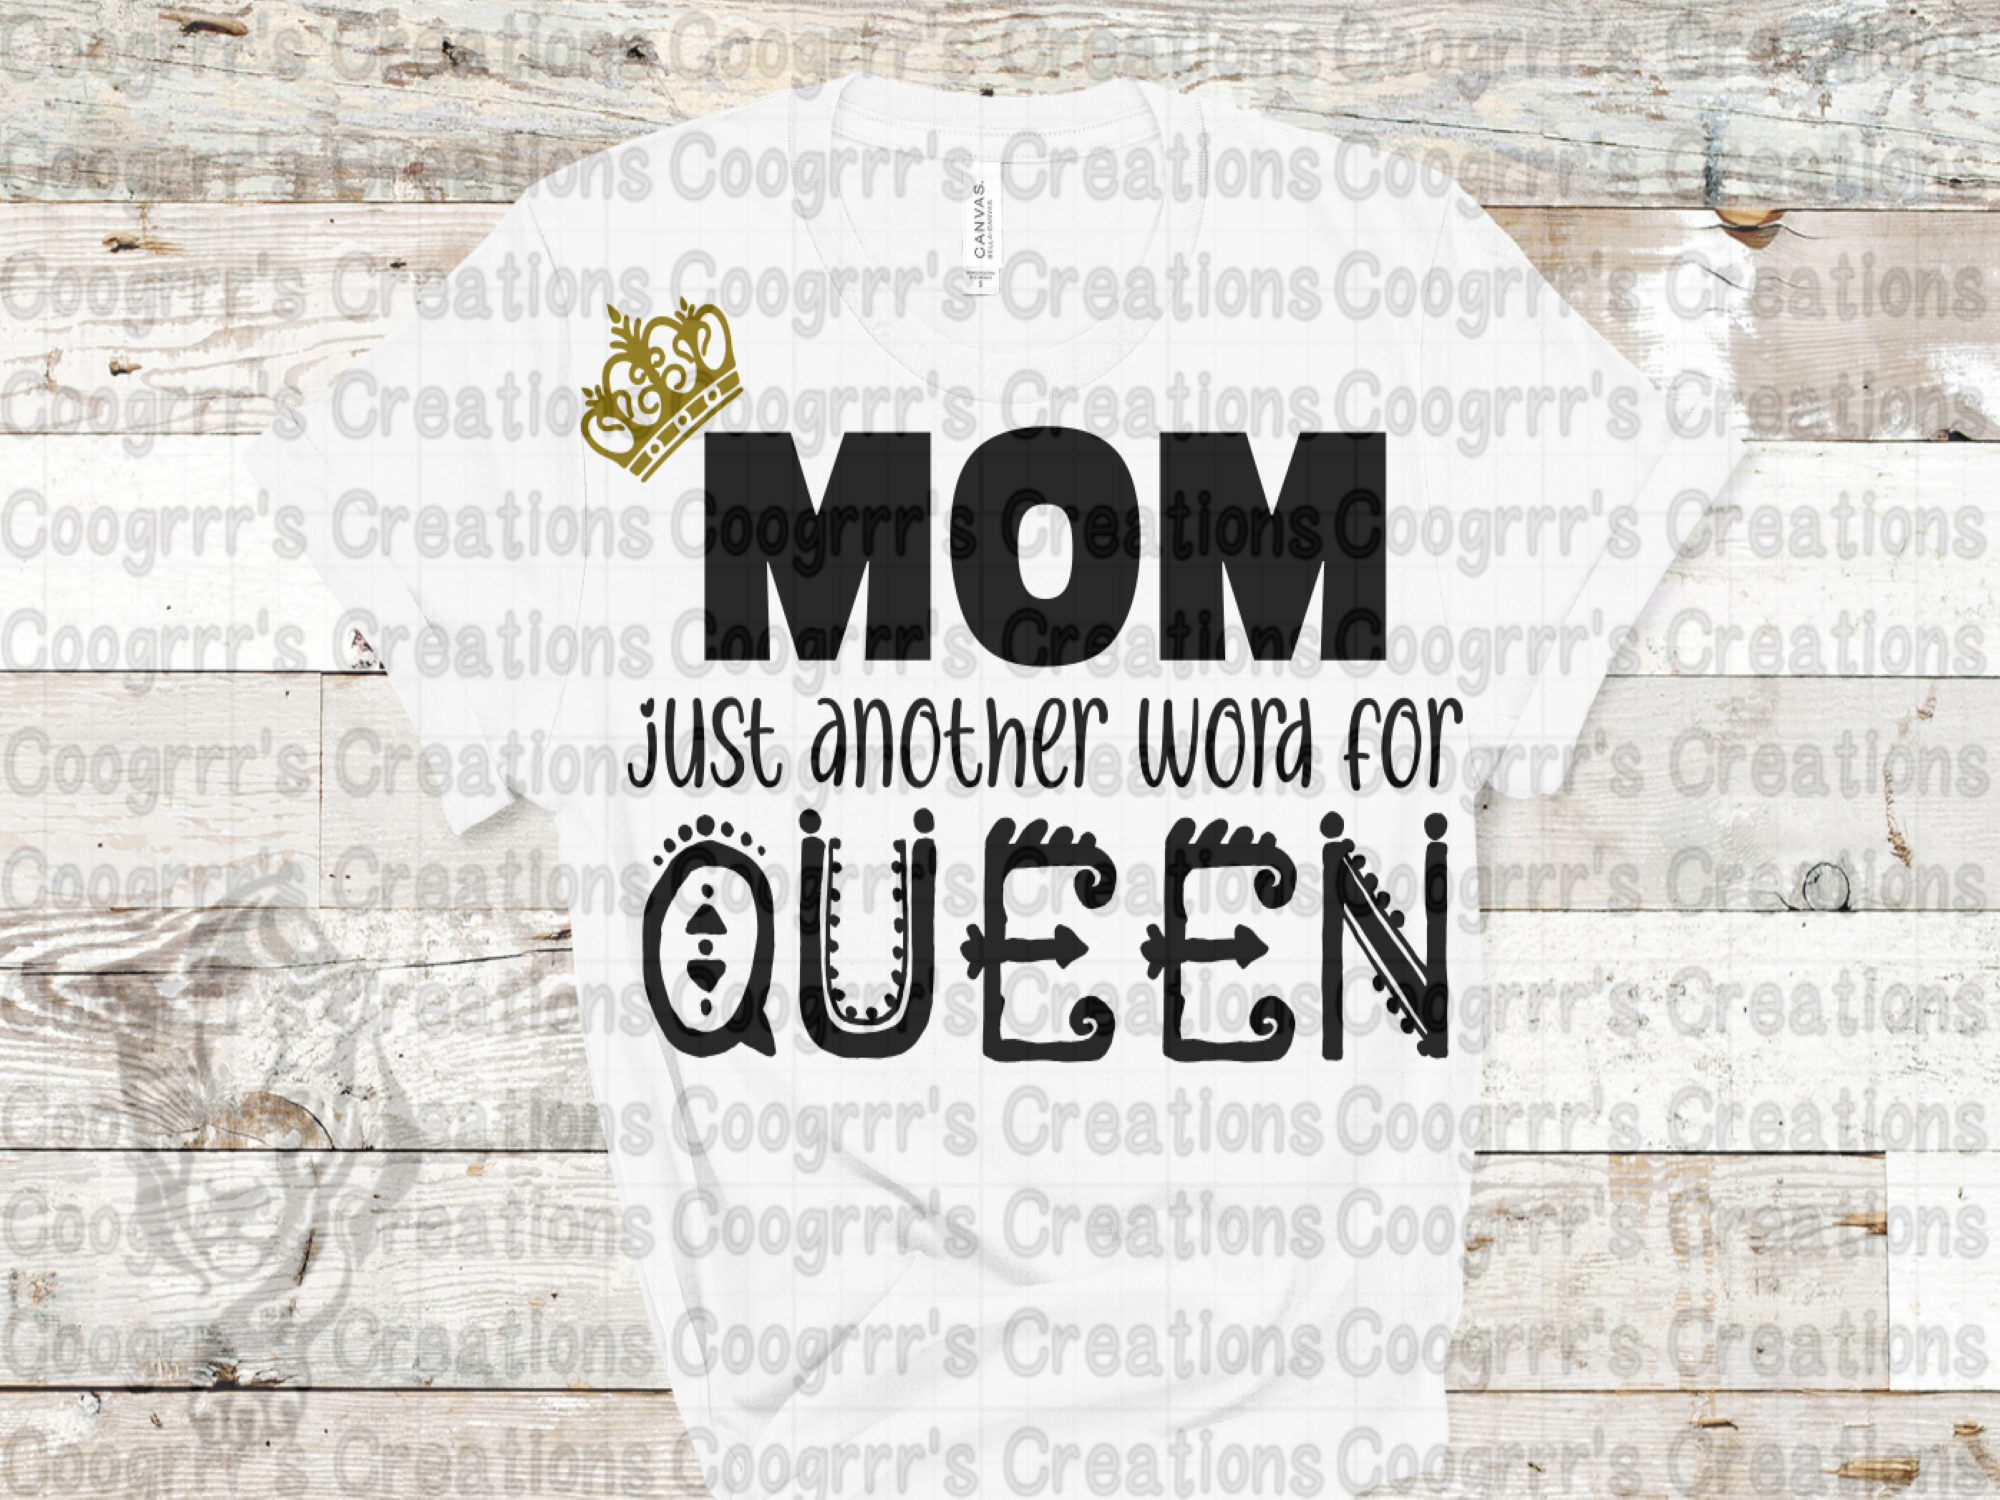 Free Greeting calligraphy, mom quotes bundle. Pin On Svg Etsy SVG, PNG, EPS, DXF File